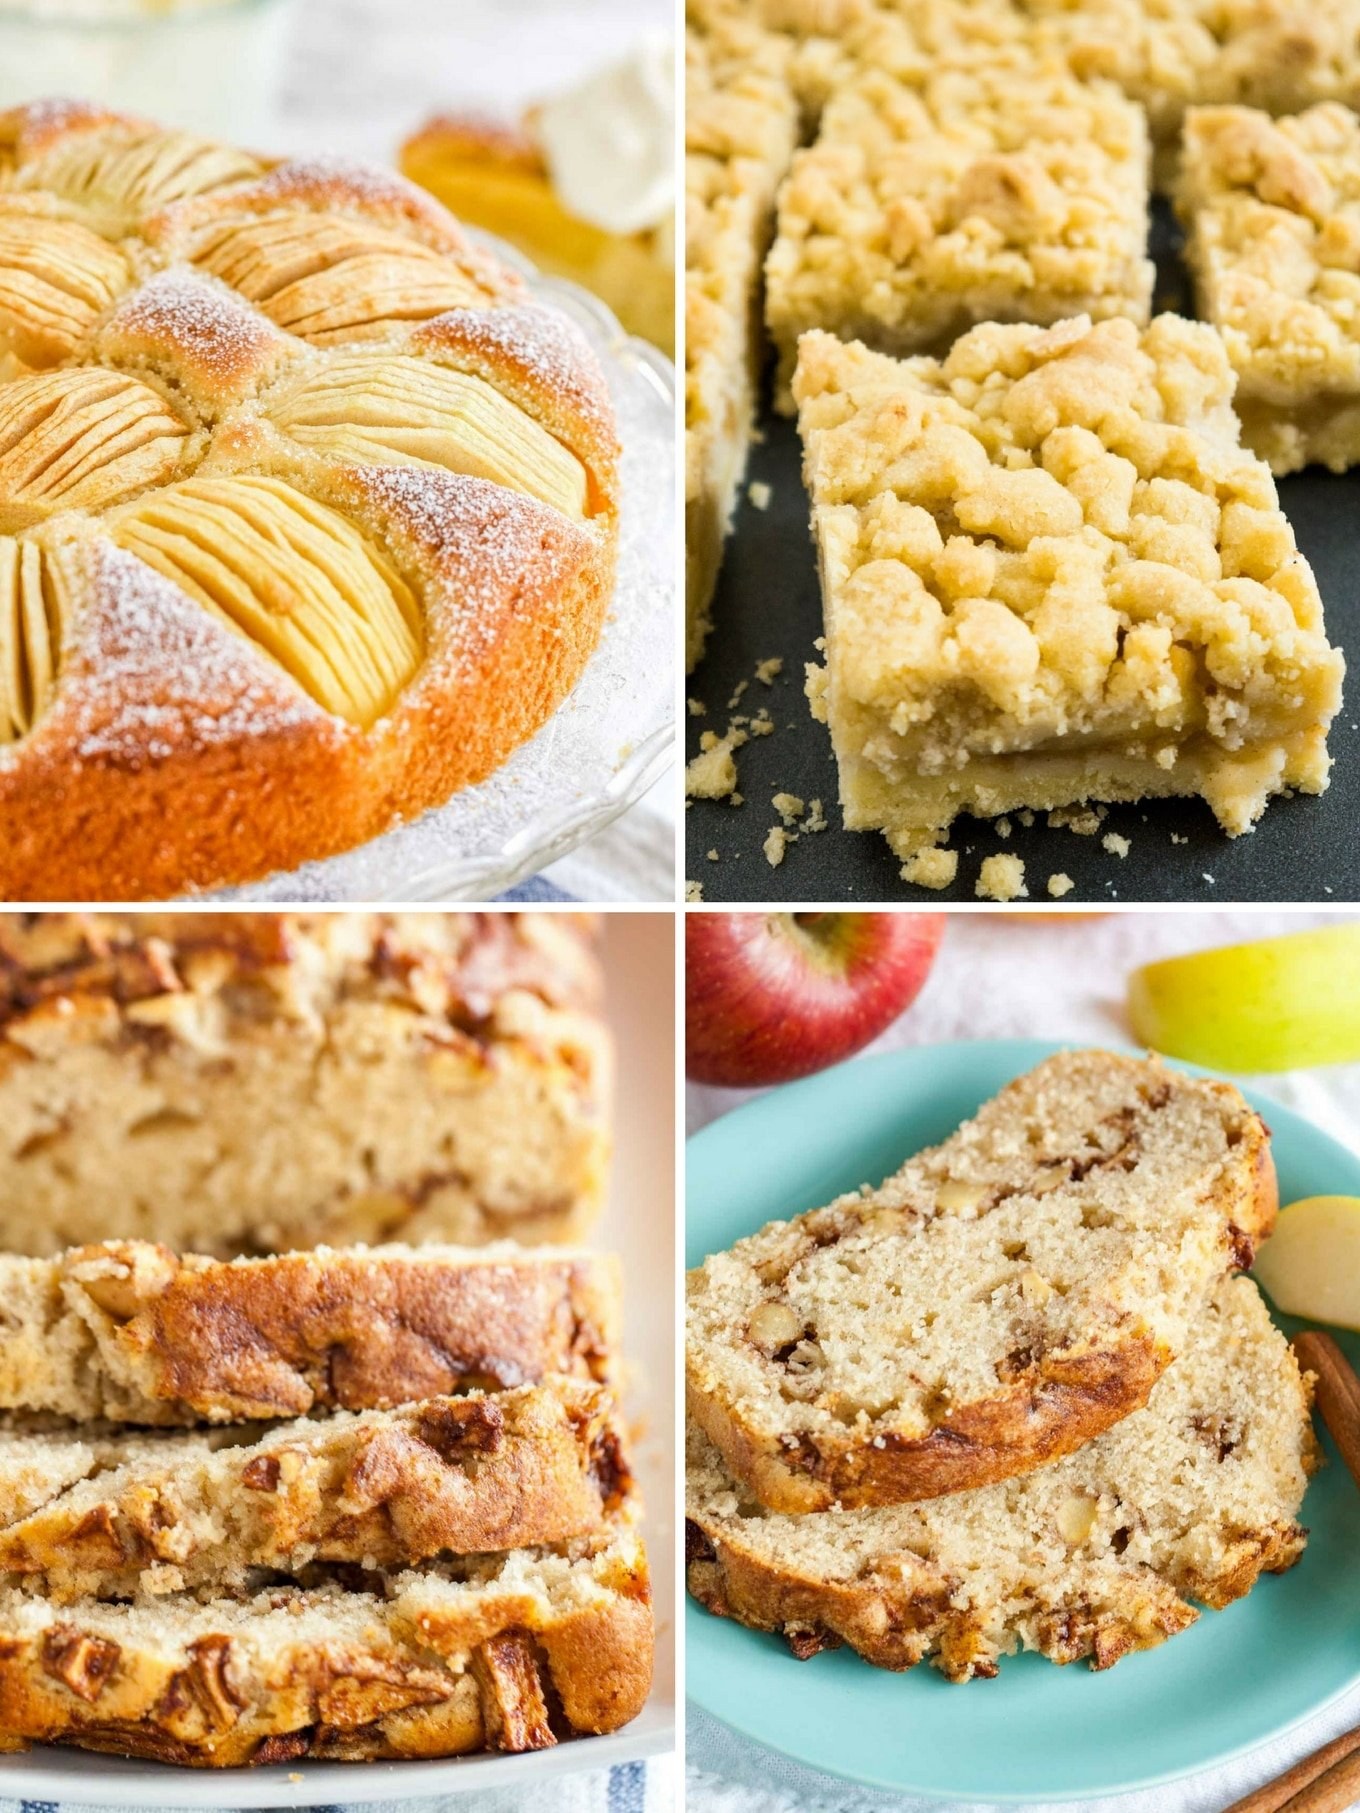 Three Must Try Apple Cake Recipes that are super popular on Plated Cravings and loved by family, friends, and readers! All three recipes are made from scratch and taste delicious.